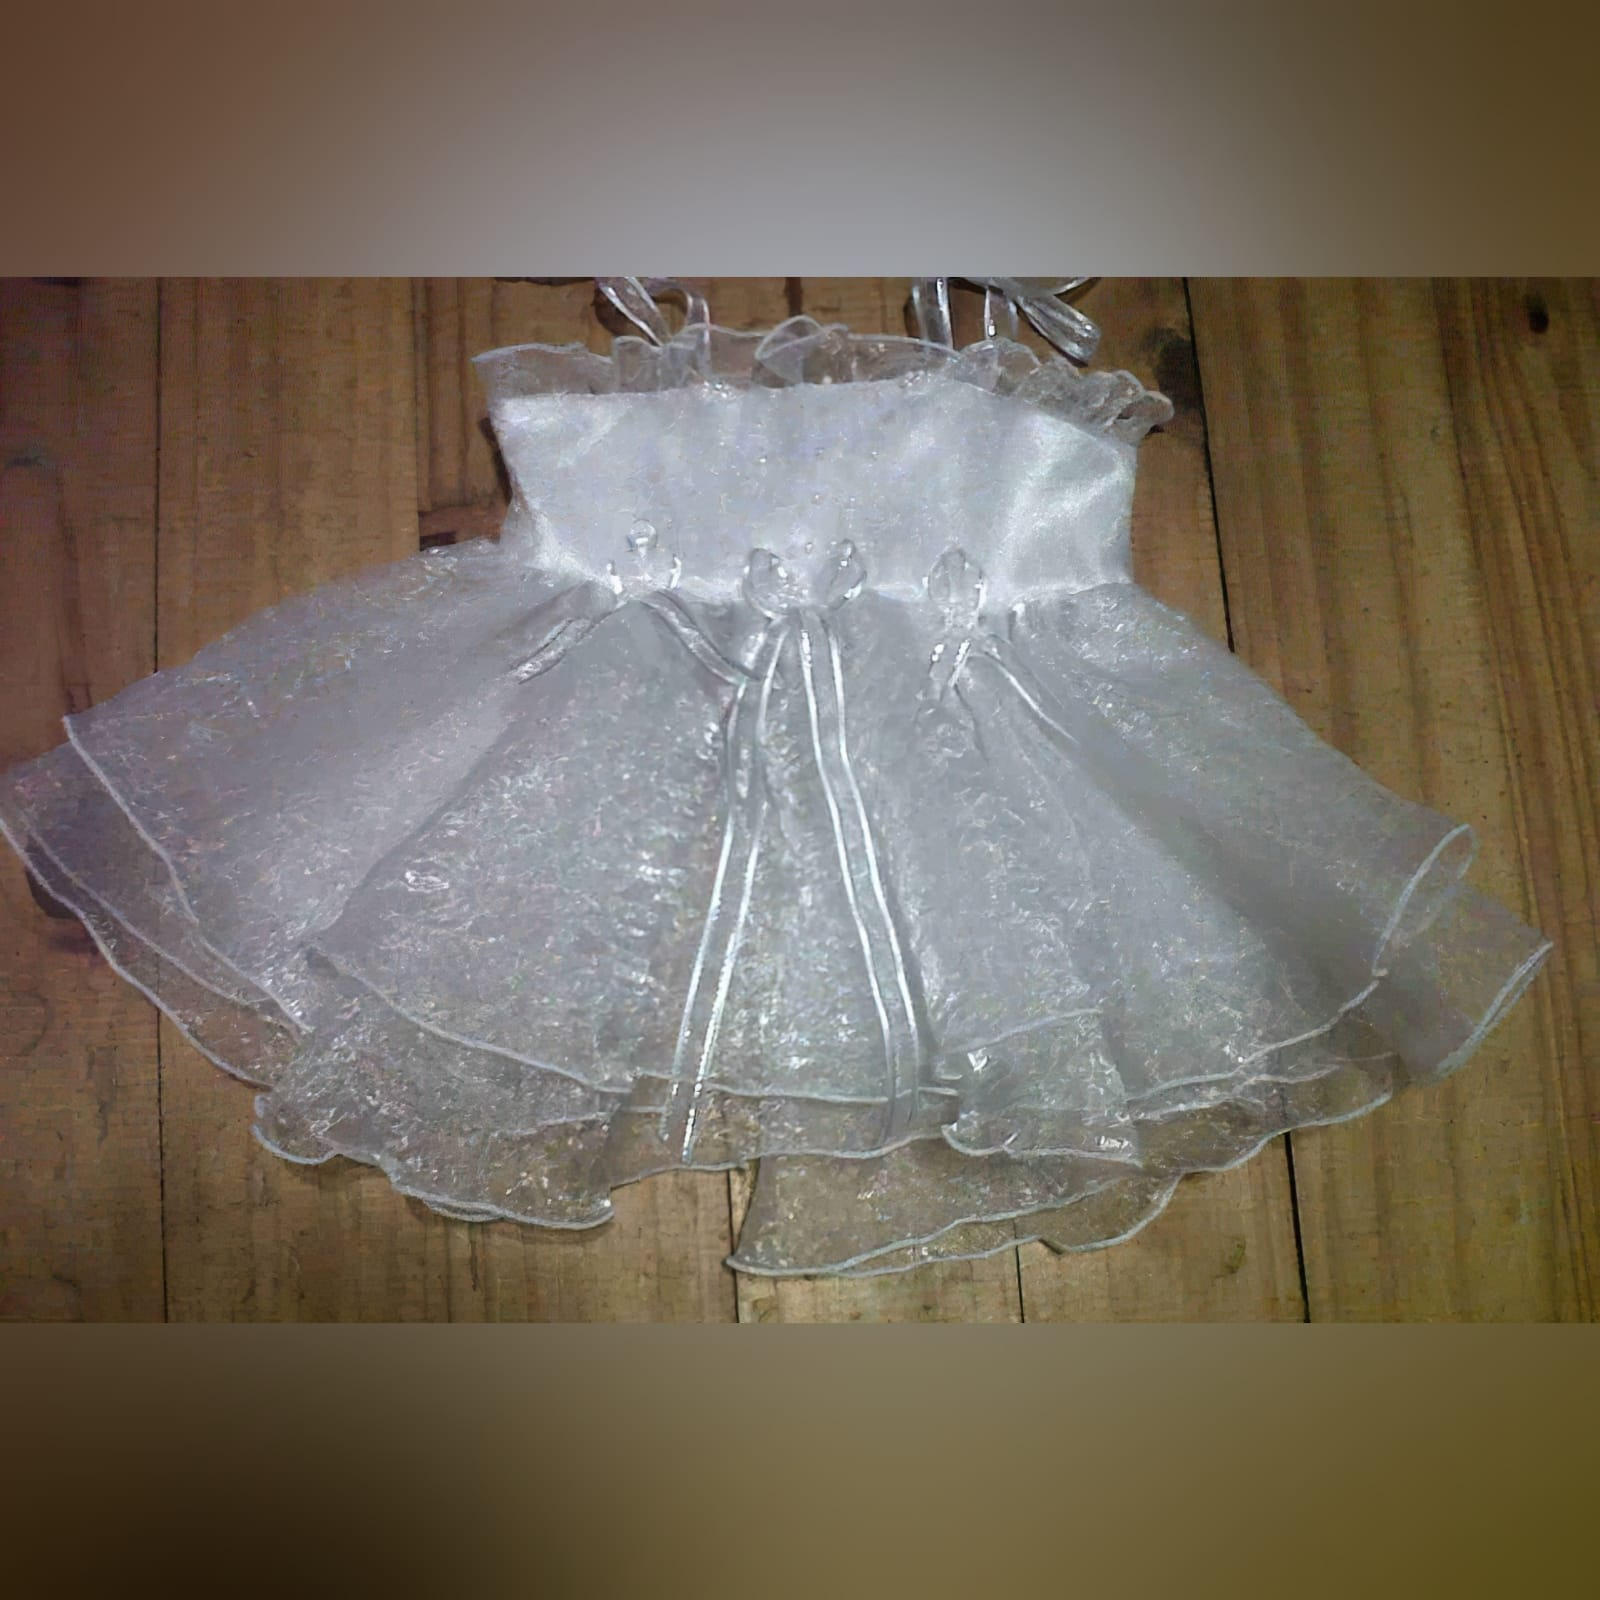 White organza baptism dress with flowers 1 baptism dress made from crushed organza detailed with beaded flowers and silver detailed ribbon.